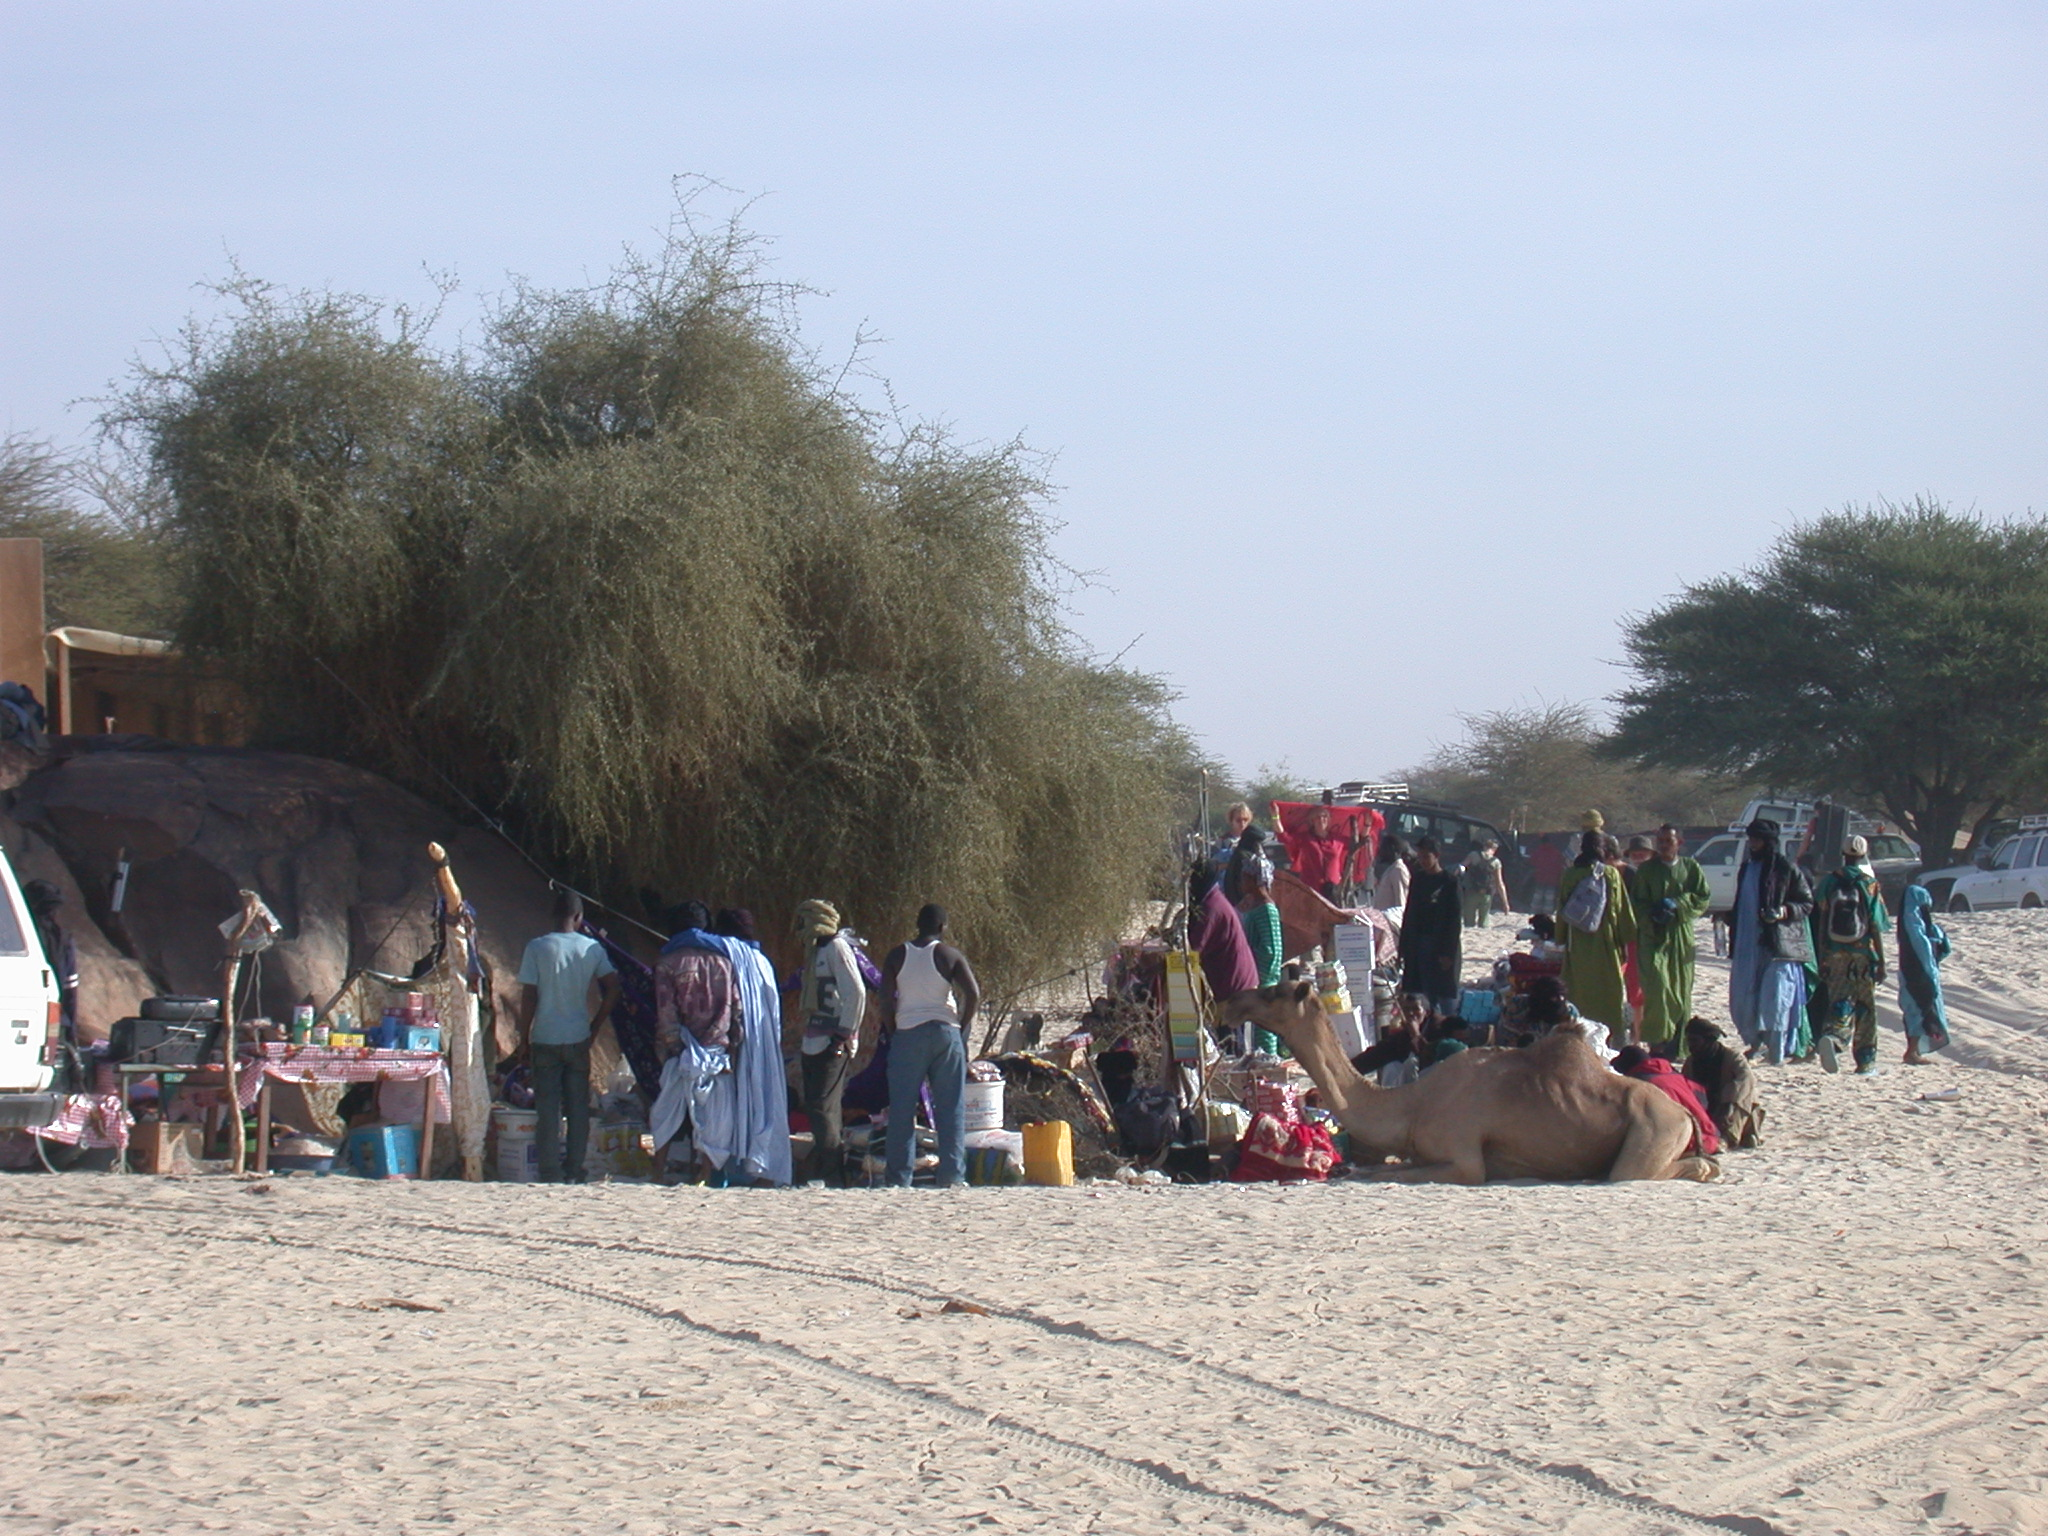 Attendees Gathering With Camel, Festival in the Desert, Essakane, Mali